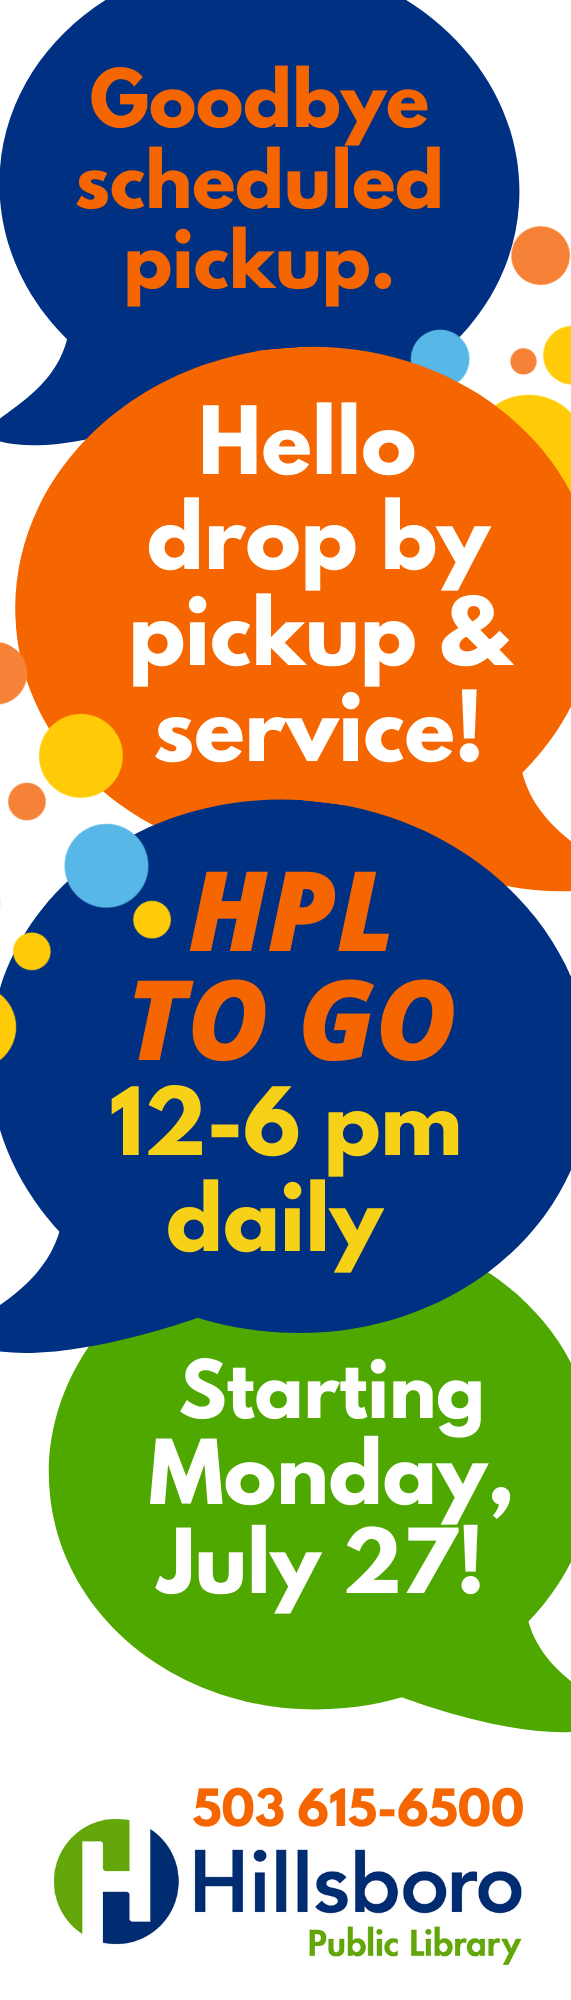 Goodbye scheduled pickup. Hello drop by pickup and servic! HPL To Go. 12 to 6 pm daily. Starting Monday, July 27.